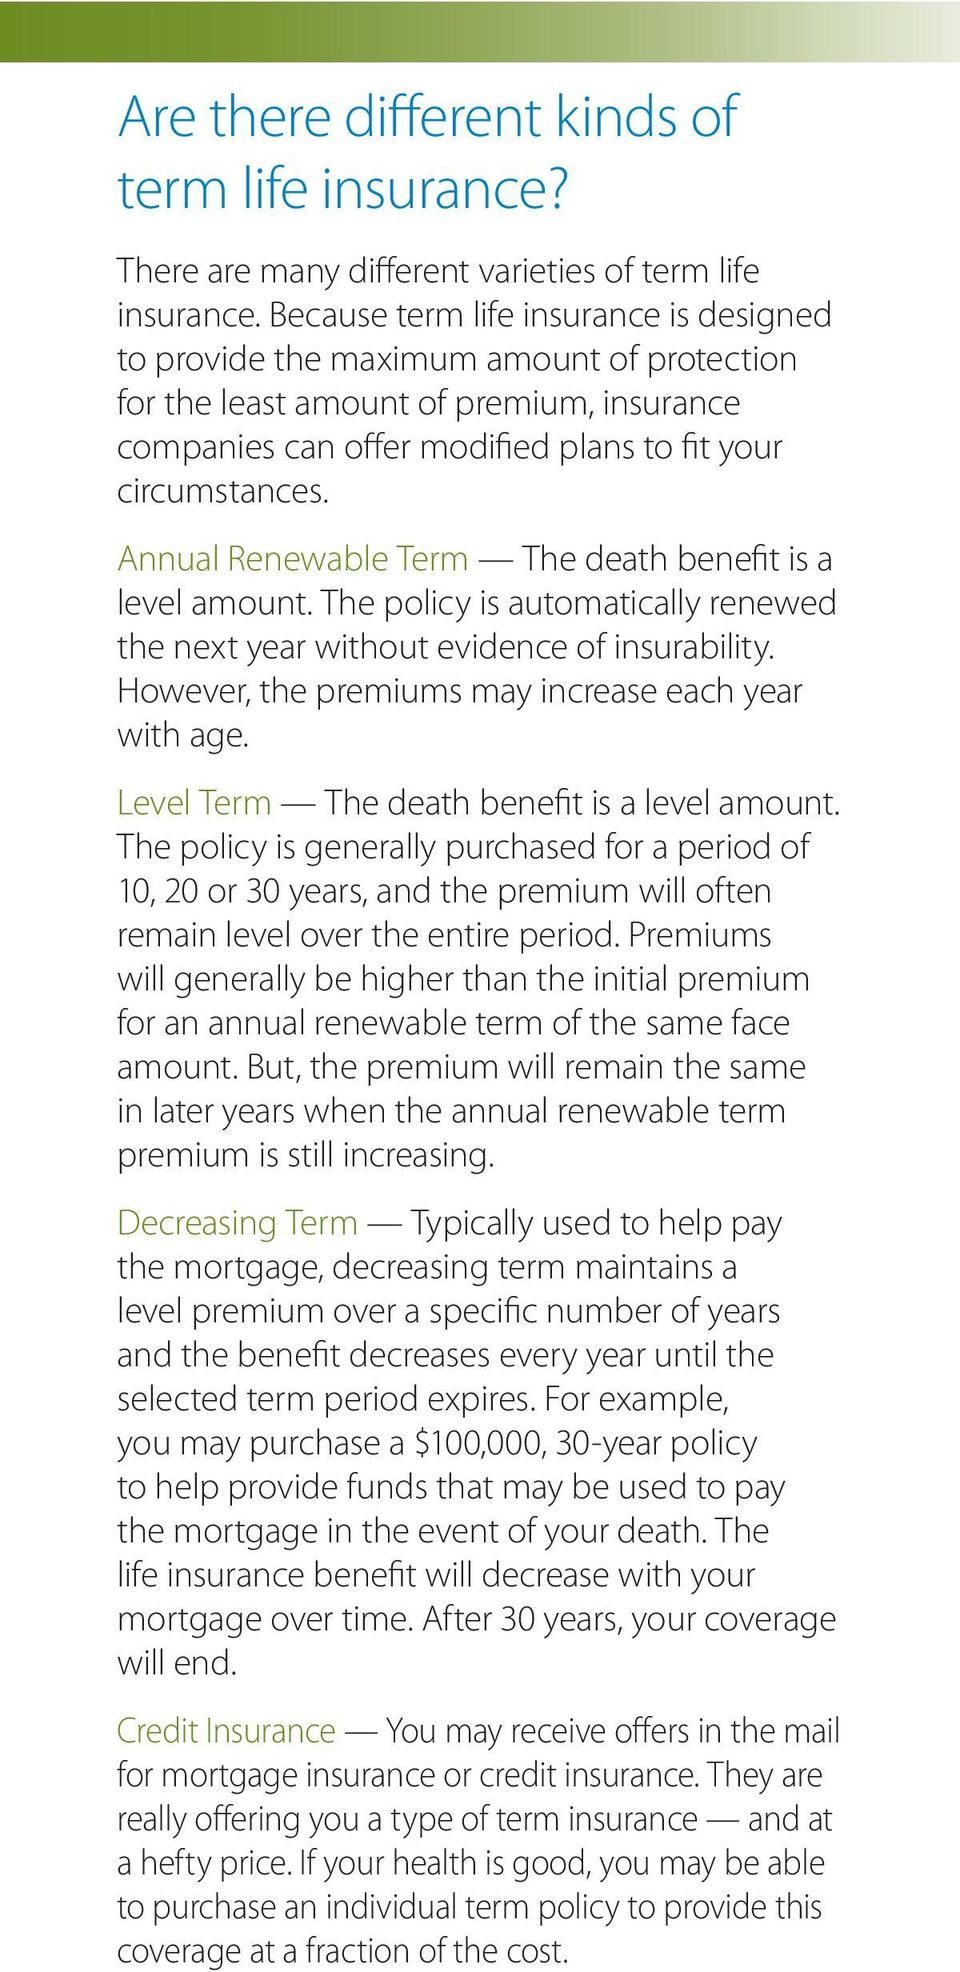 Annual Renewable Term The death benefit is a level amount. The policy is automatically renewed the next year without evidence of insurability. However, the premiums may increase each year with age.